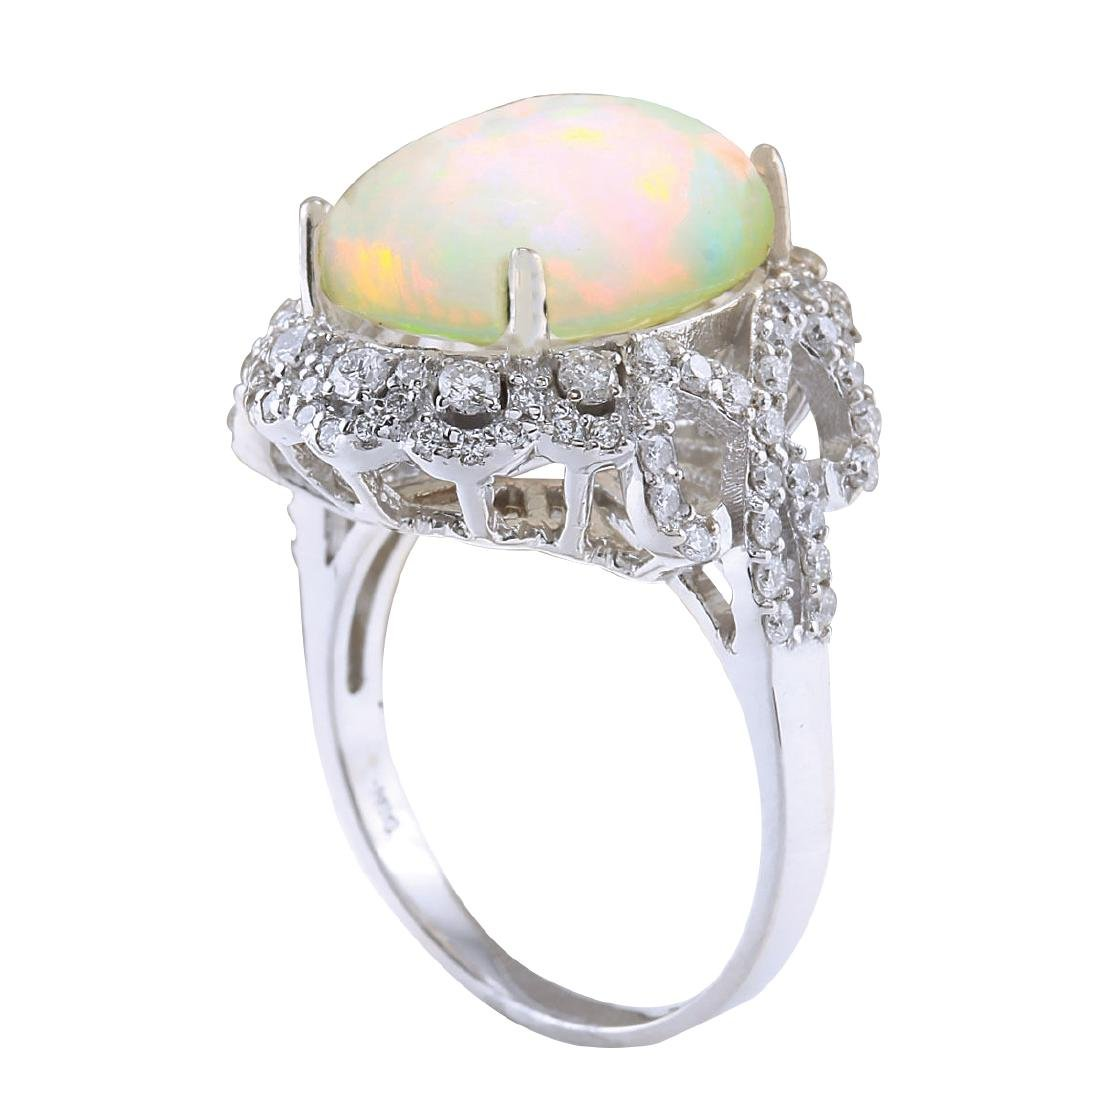 7.24CTW Natural Opal And Diamond Ring In 18K White Gold - 3